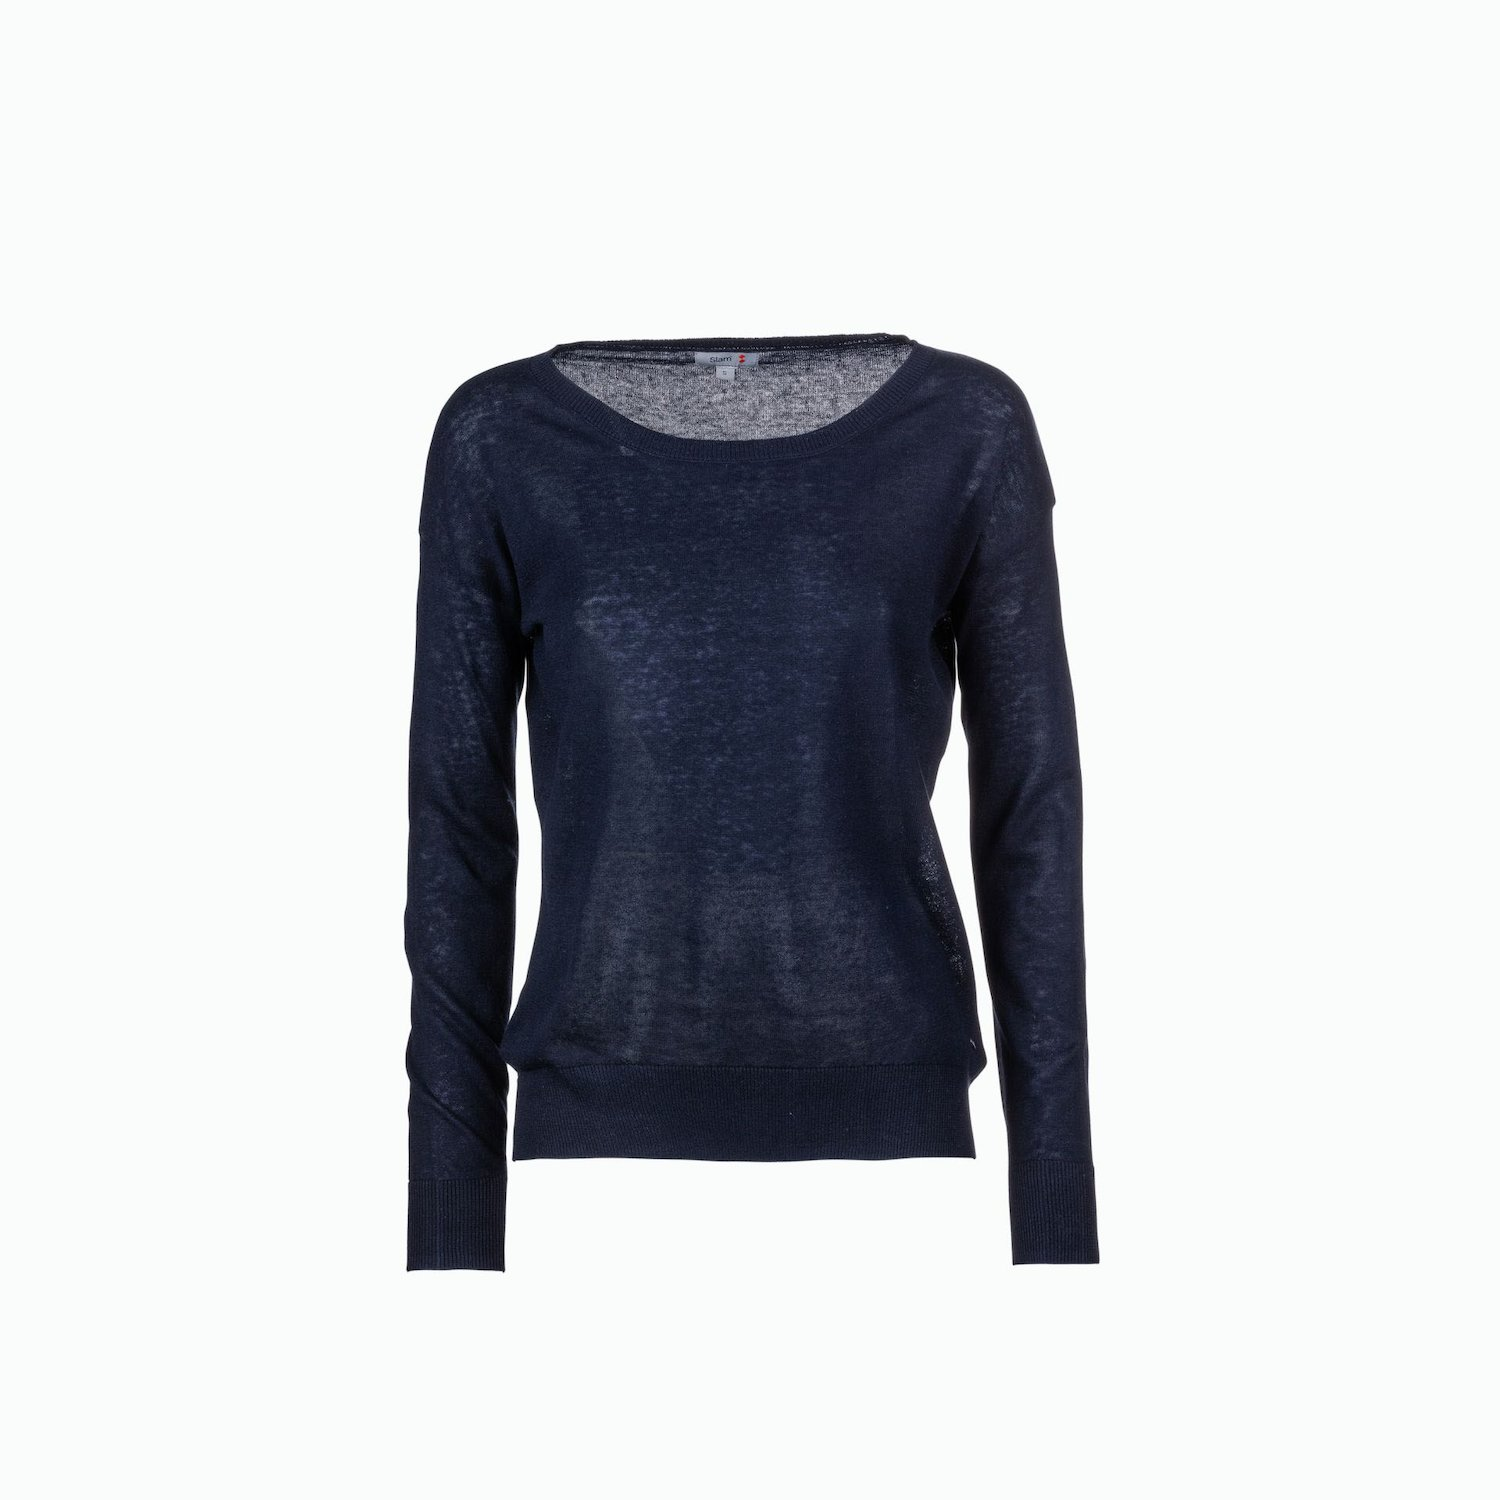 C163 Jumper - Navy